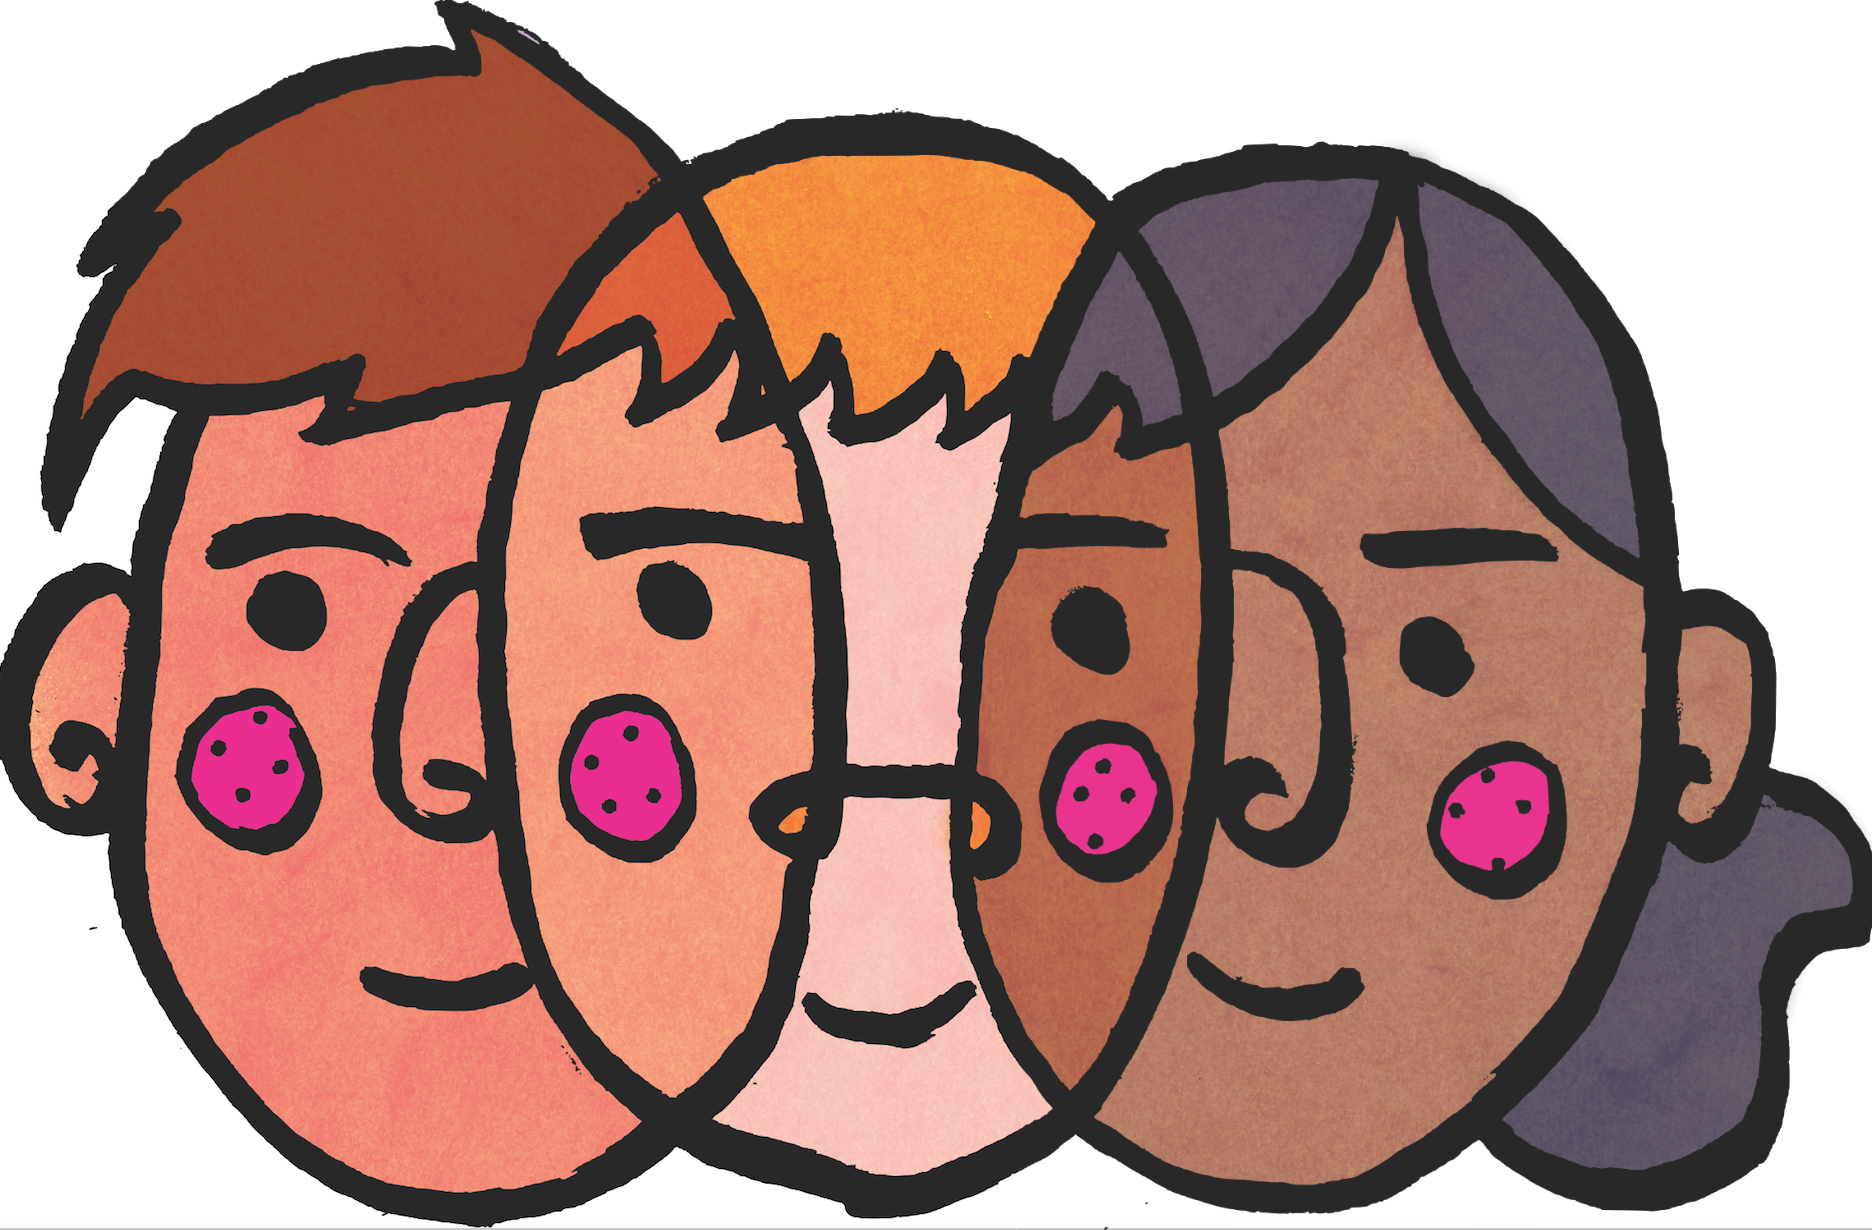 Make and re-make your team. Illustration by Daniel Evans for thiswolf.com